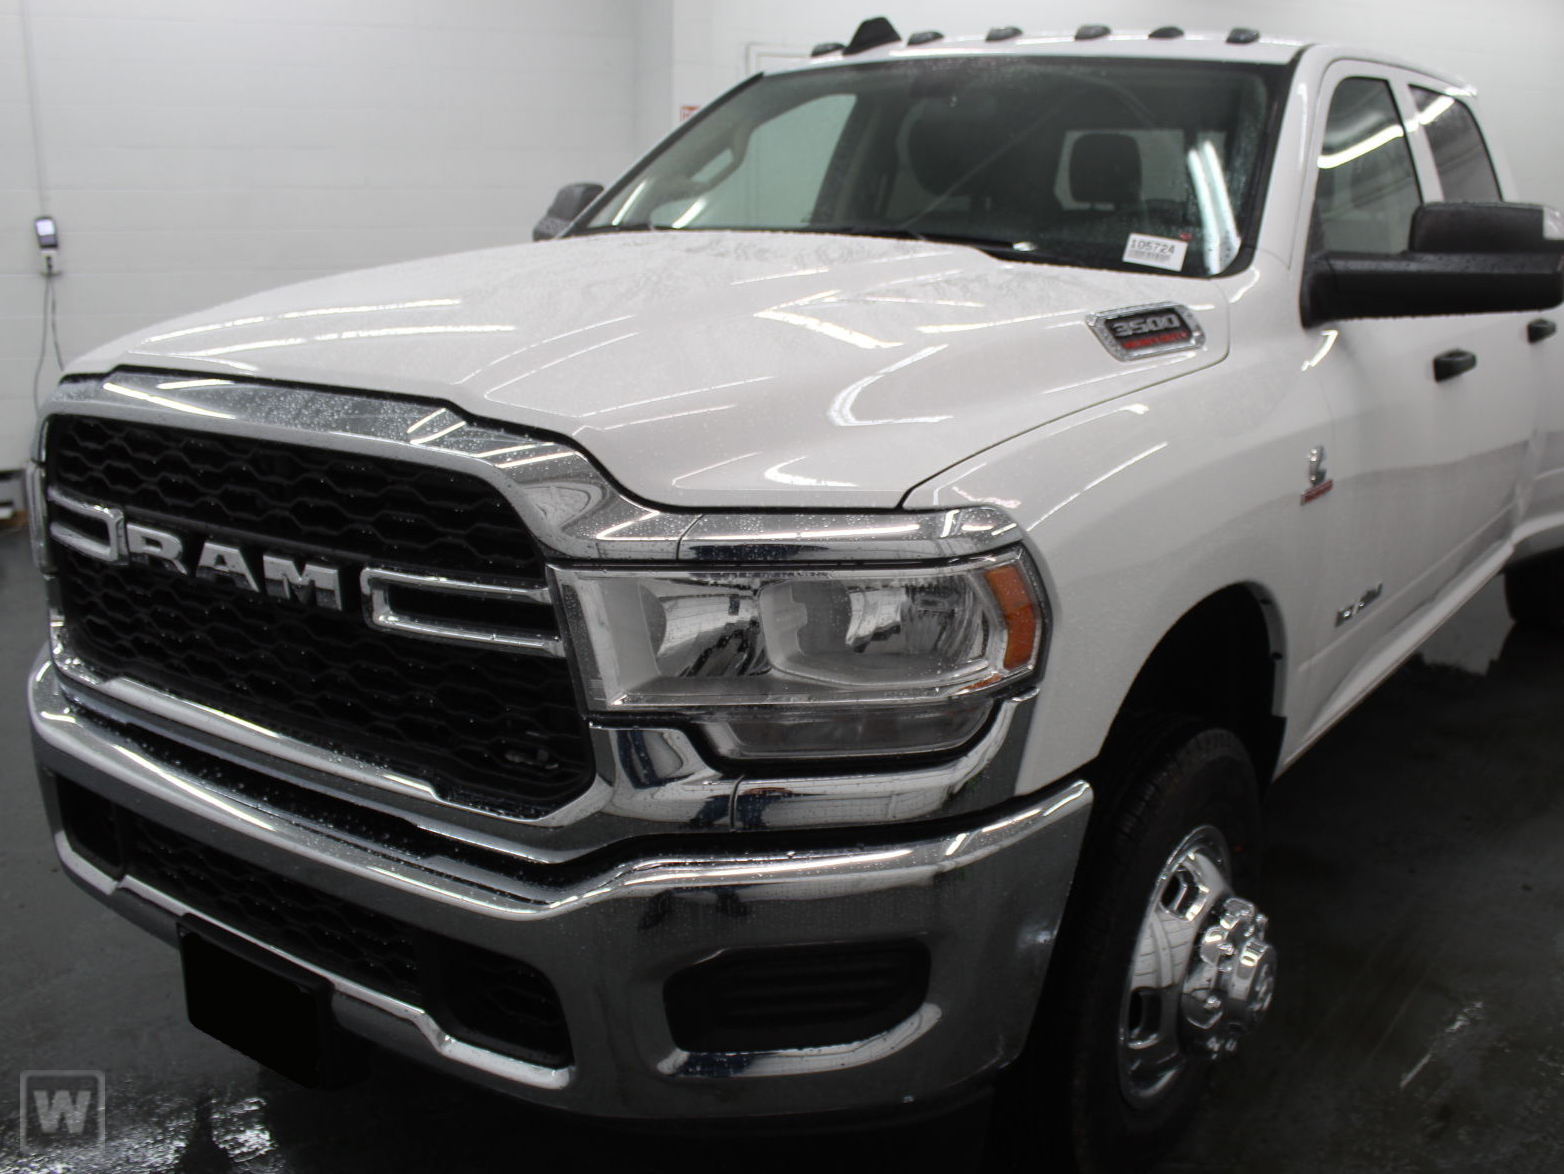 2020 Ram 3500 Crew Cab 4x4, Cab Chassis #32301 - photo 1